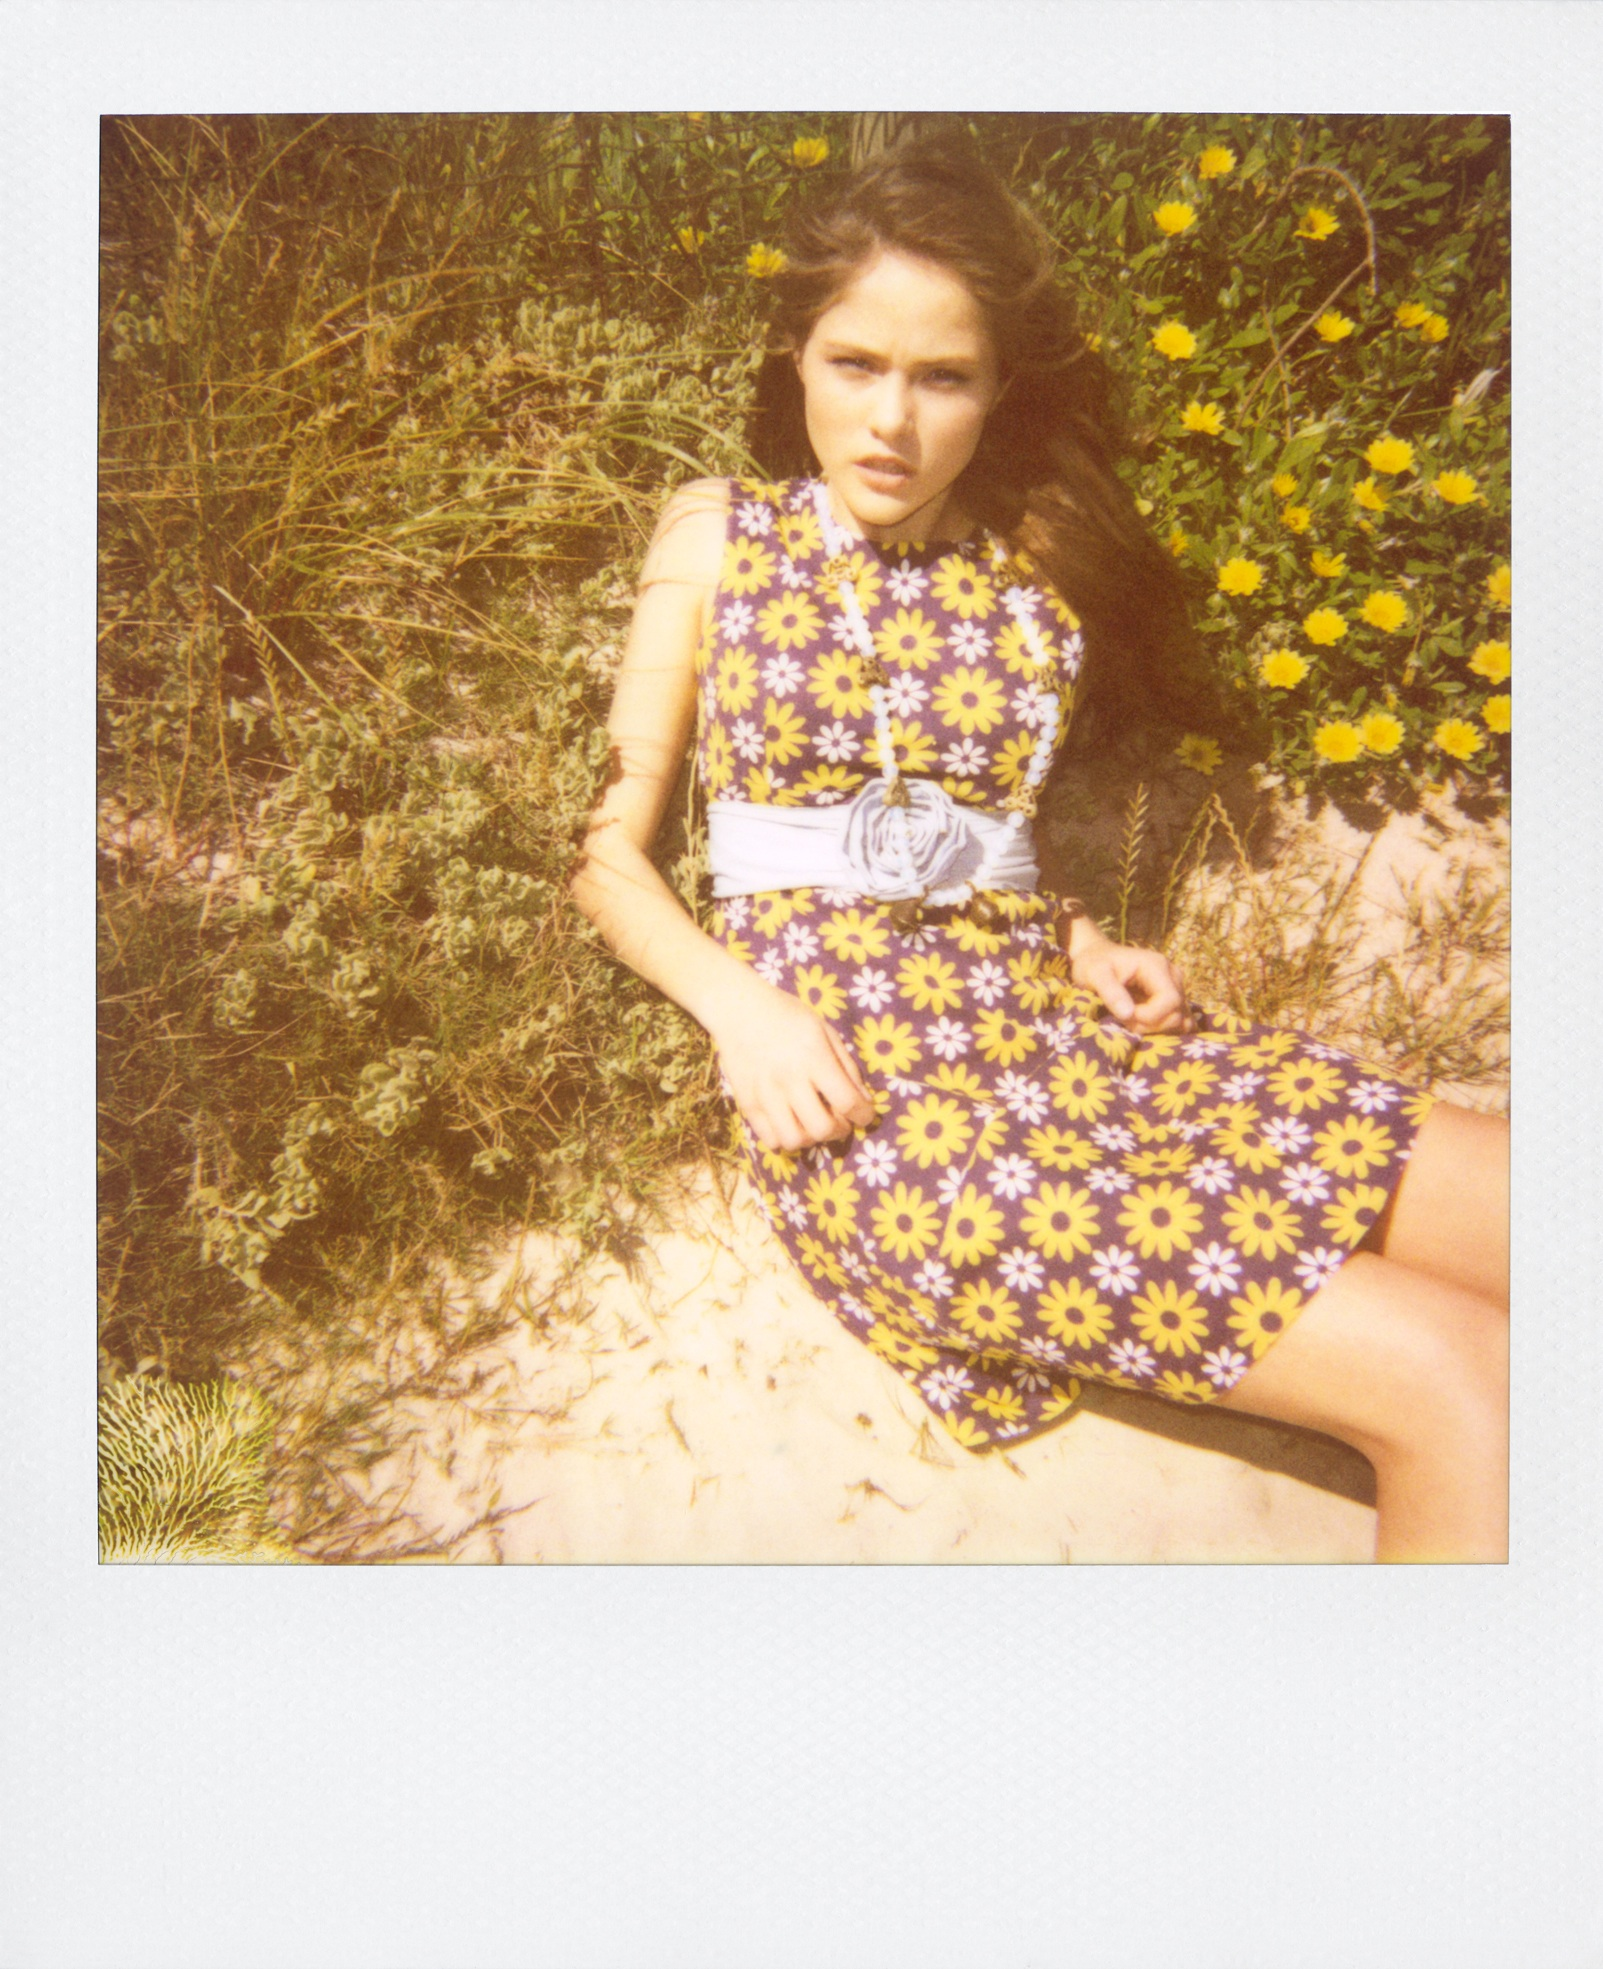 Flower Power. Polaroid Shoot. Photographed by Ulrich Knoeblach.